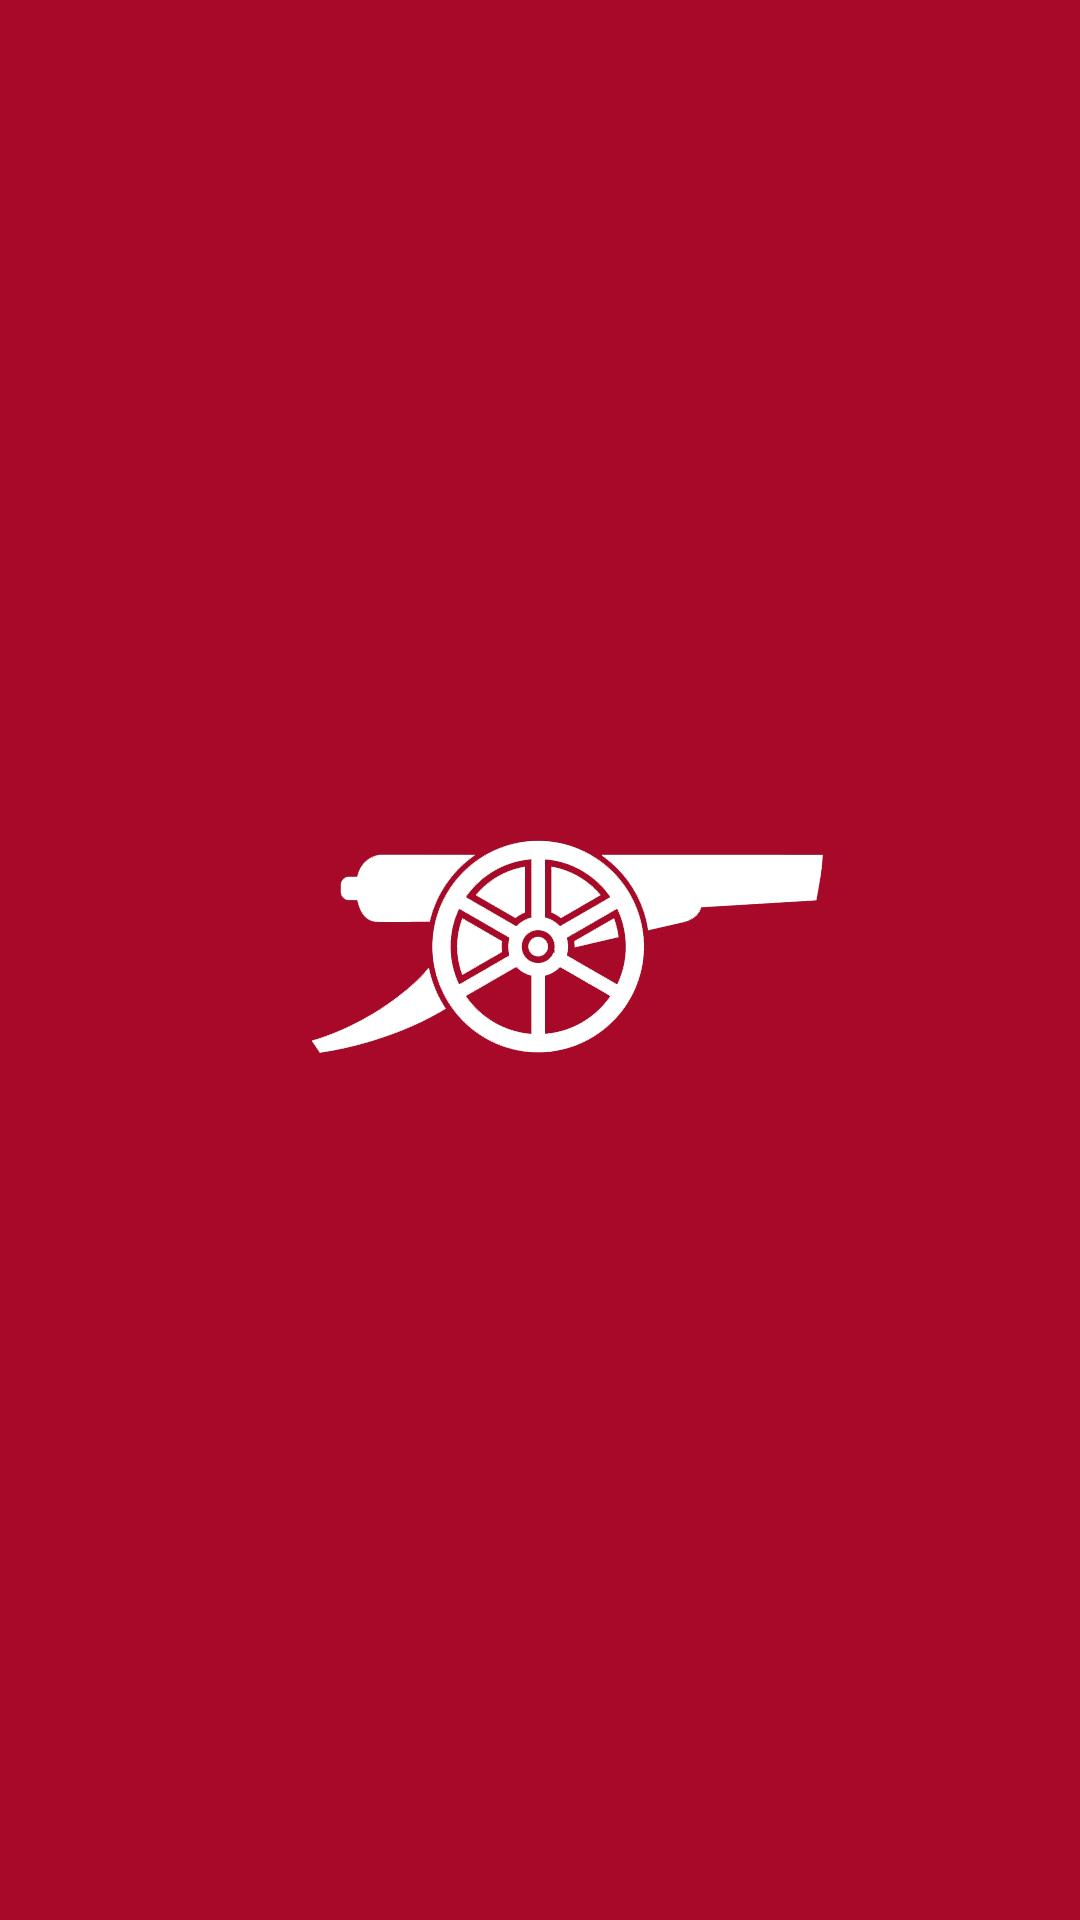 arsenal f c 1080x1920 wallpaper